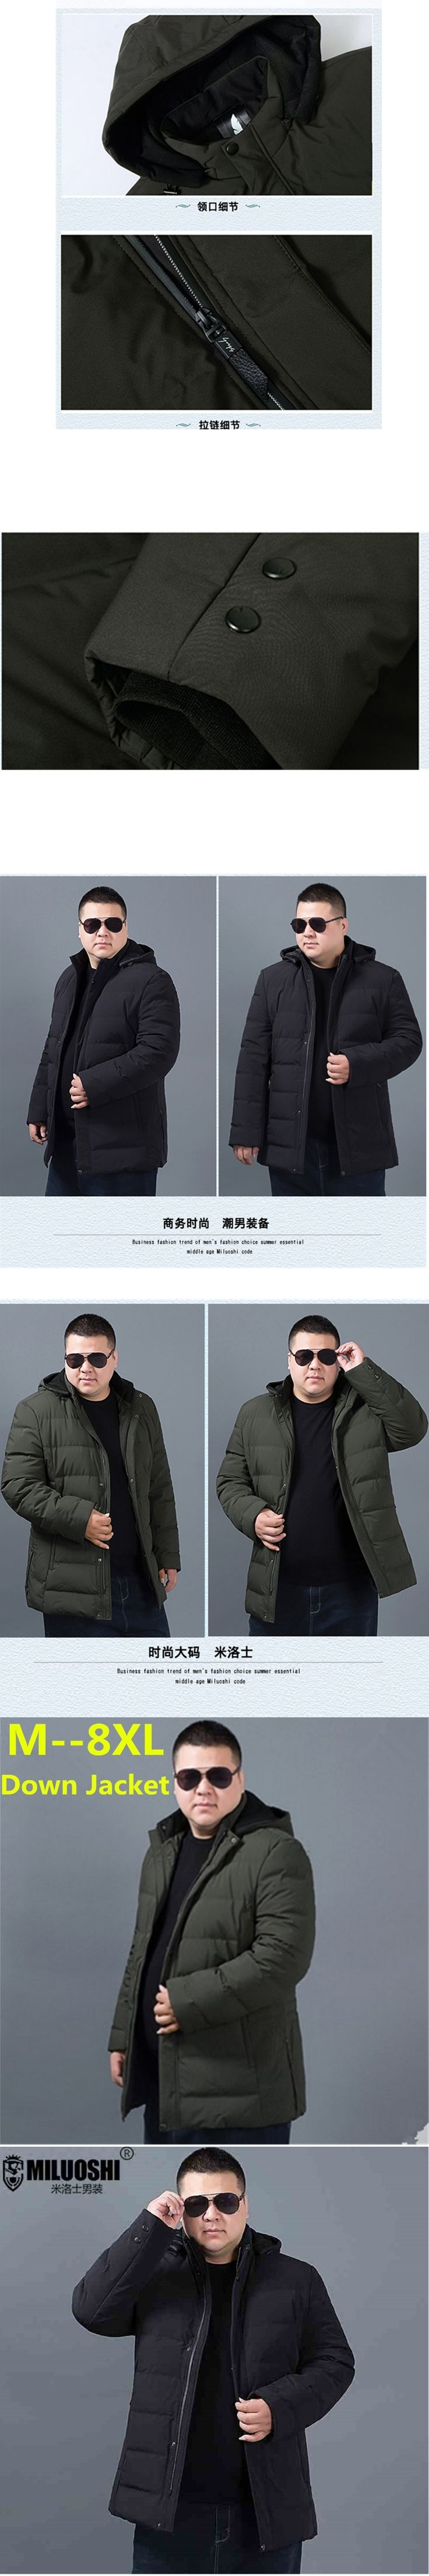 2018 Men Winter Jackets Autumn Mens Cotton Padded Solid Thick Parkas Fashion Casual Parka Down Coat Hooded Zipper Outwear Plus Size M 5xl Simple Wild Clothing